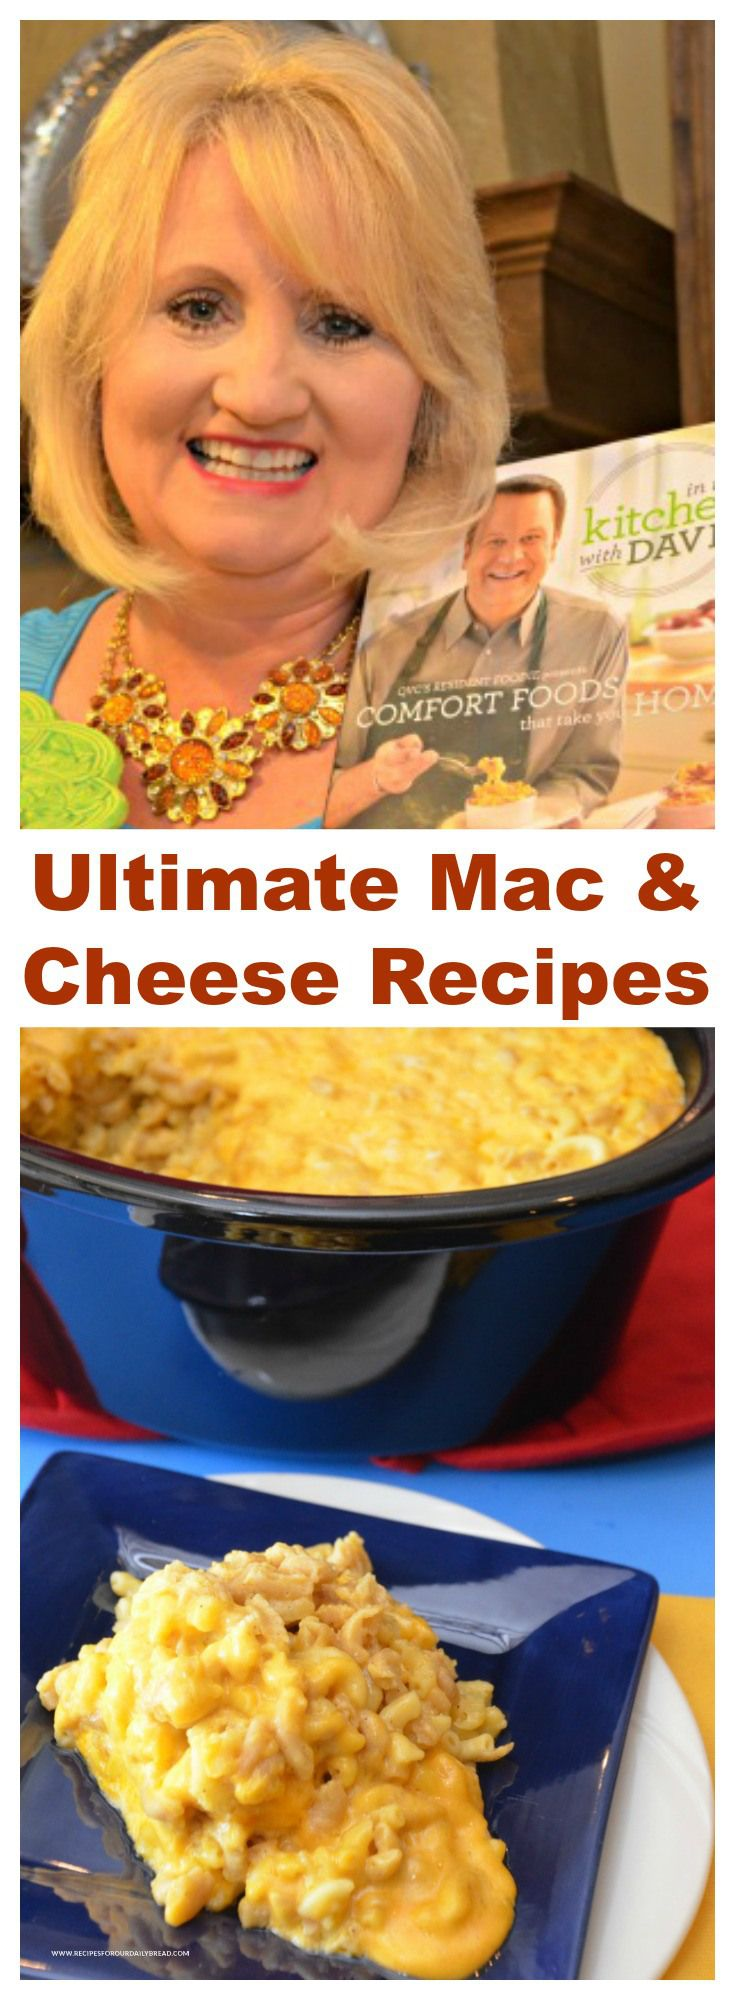 Everyone loves a homemade creamy ooey gooey Mac and Cheese recipe for Thanksgiving. This post includes my two favorite #recipes a baked #Mac and Cheese and a slow cooker #Mac & Cheese plus delicious Mac & Cheese recipes from my favorite bloggers. #maccheese #macandcheese #sides